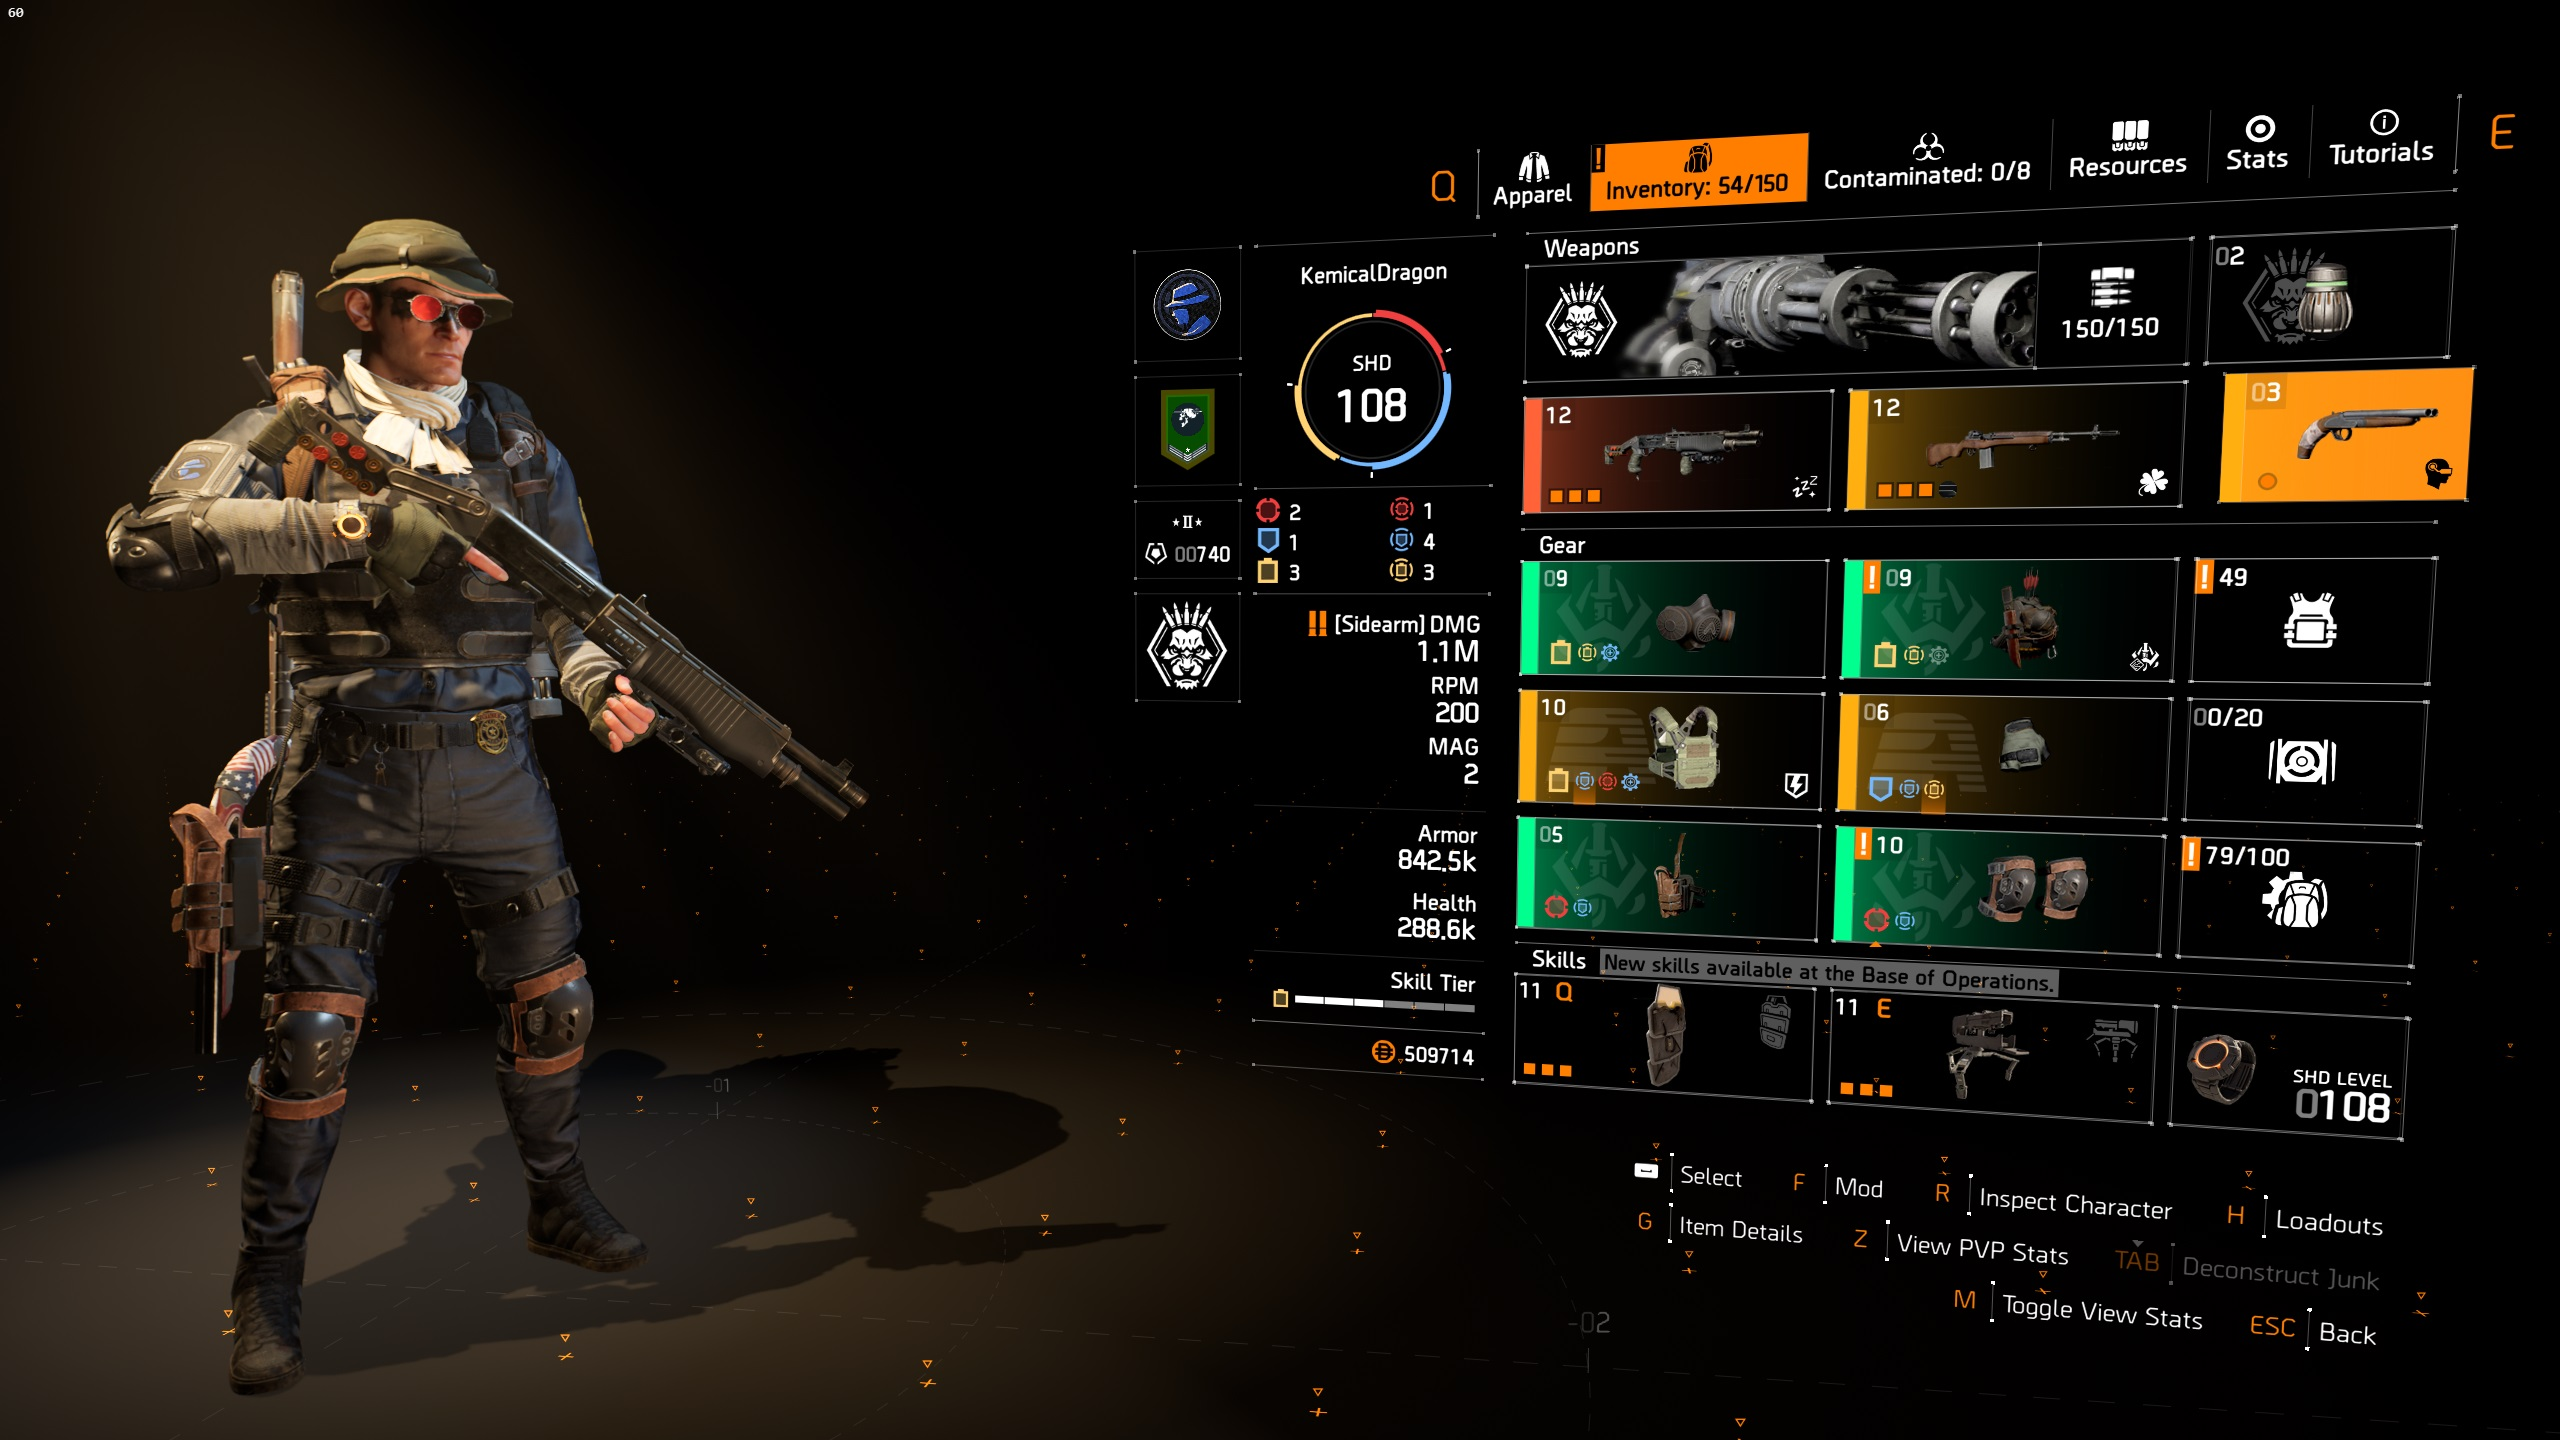 Tom Clancy's The Division 2 03_02_2021 16_00_39.jpg